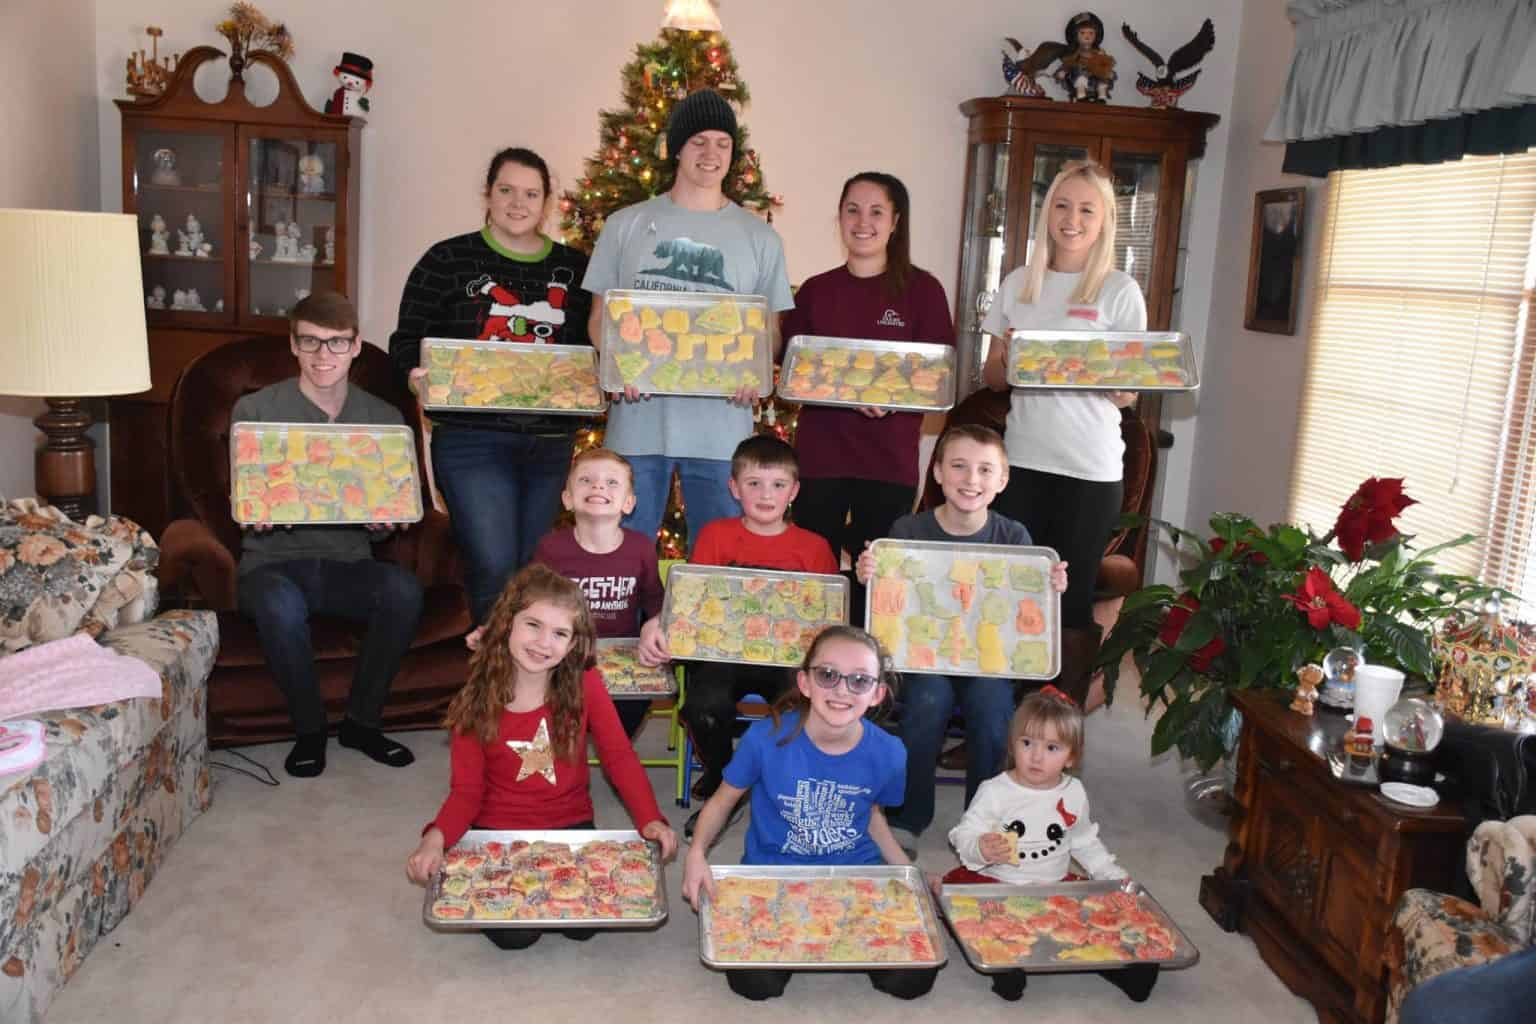 Christmas cookie baking with kids